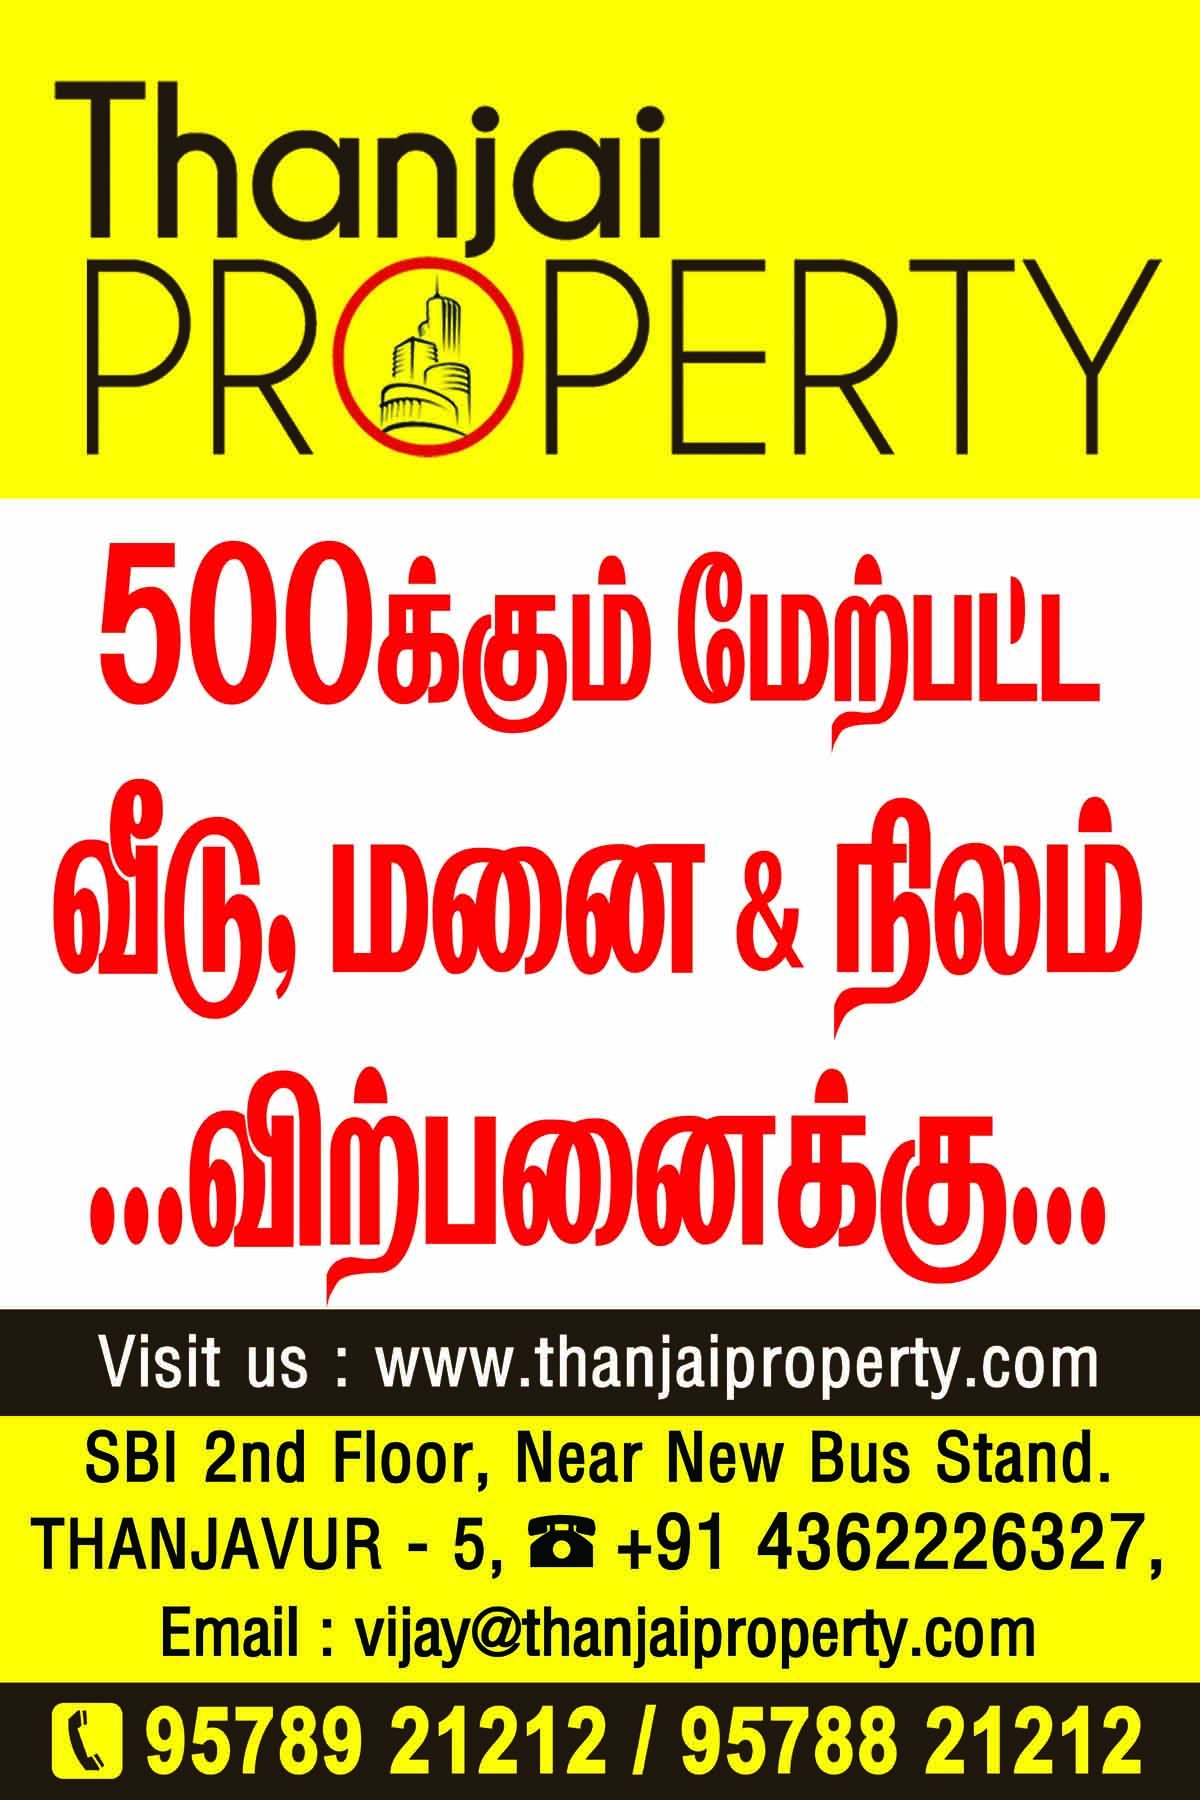 ThanjaiProperty com is No 1 Tamilnadu Property Website for buying